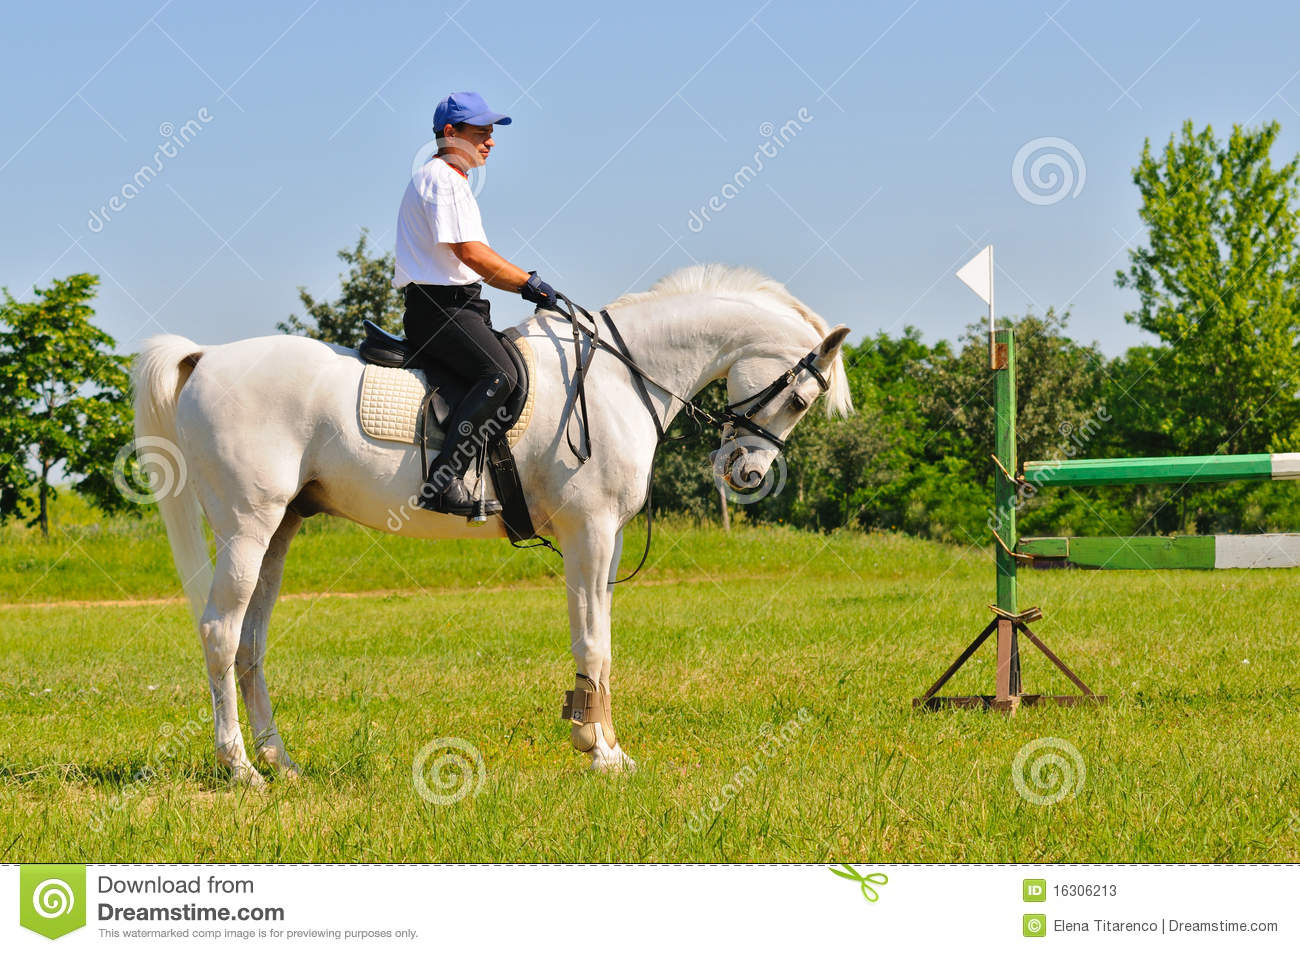 Rider On White Arabian Horse Stock Image Image Of Sportive Male 16306213